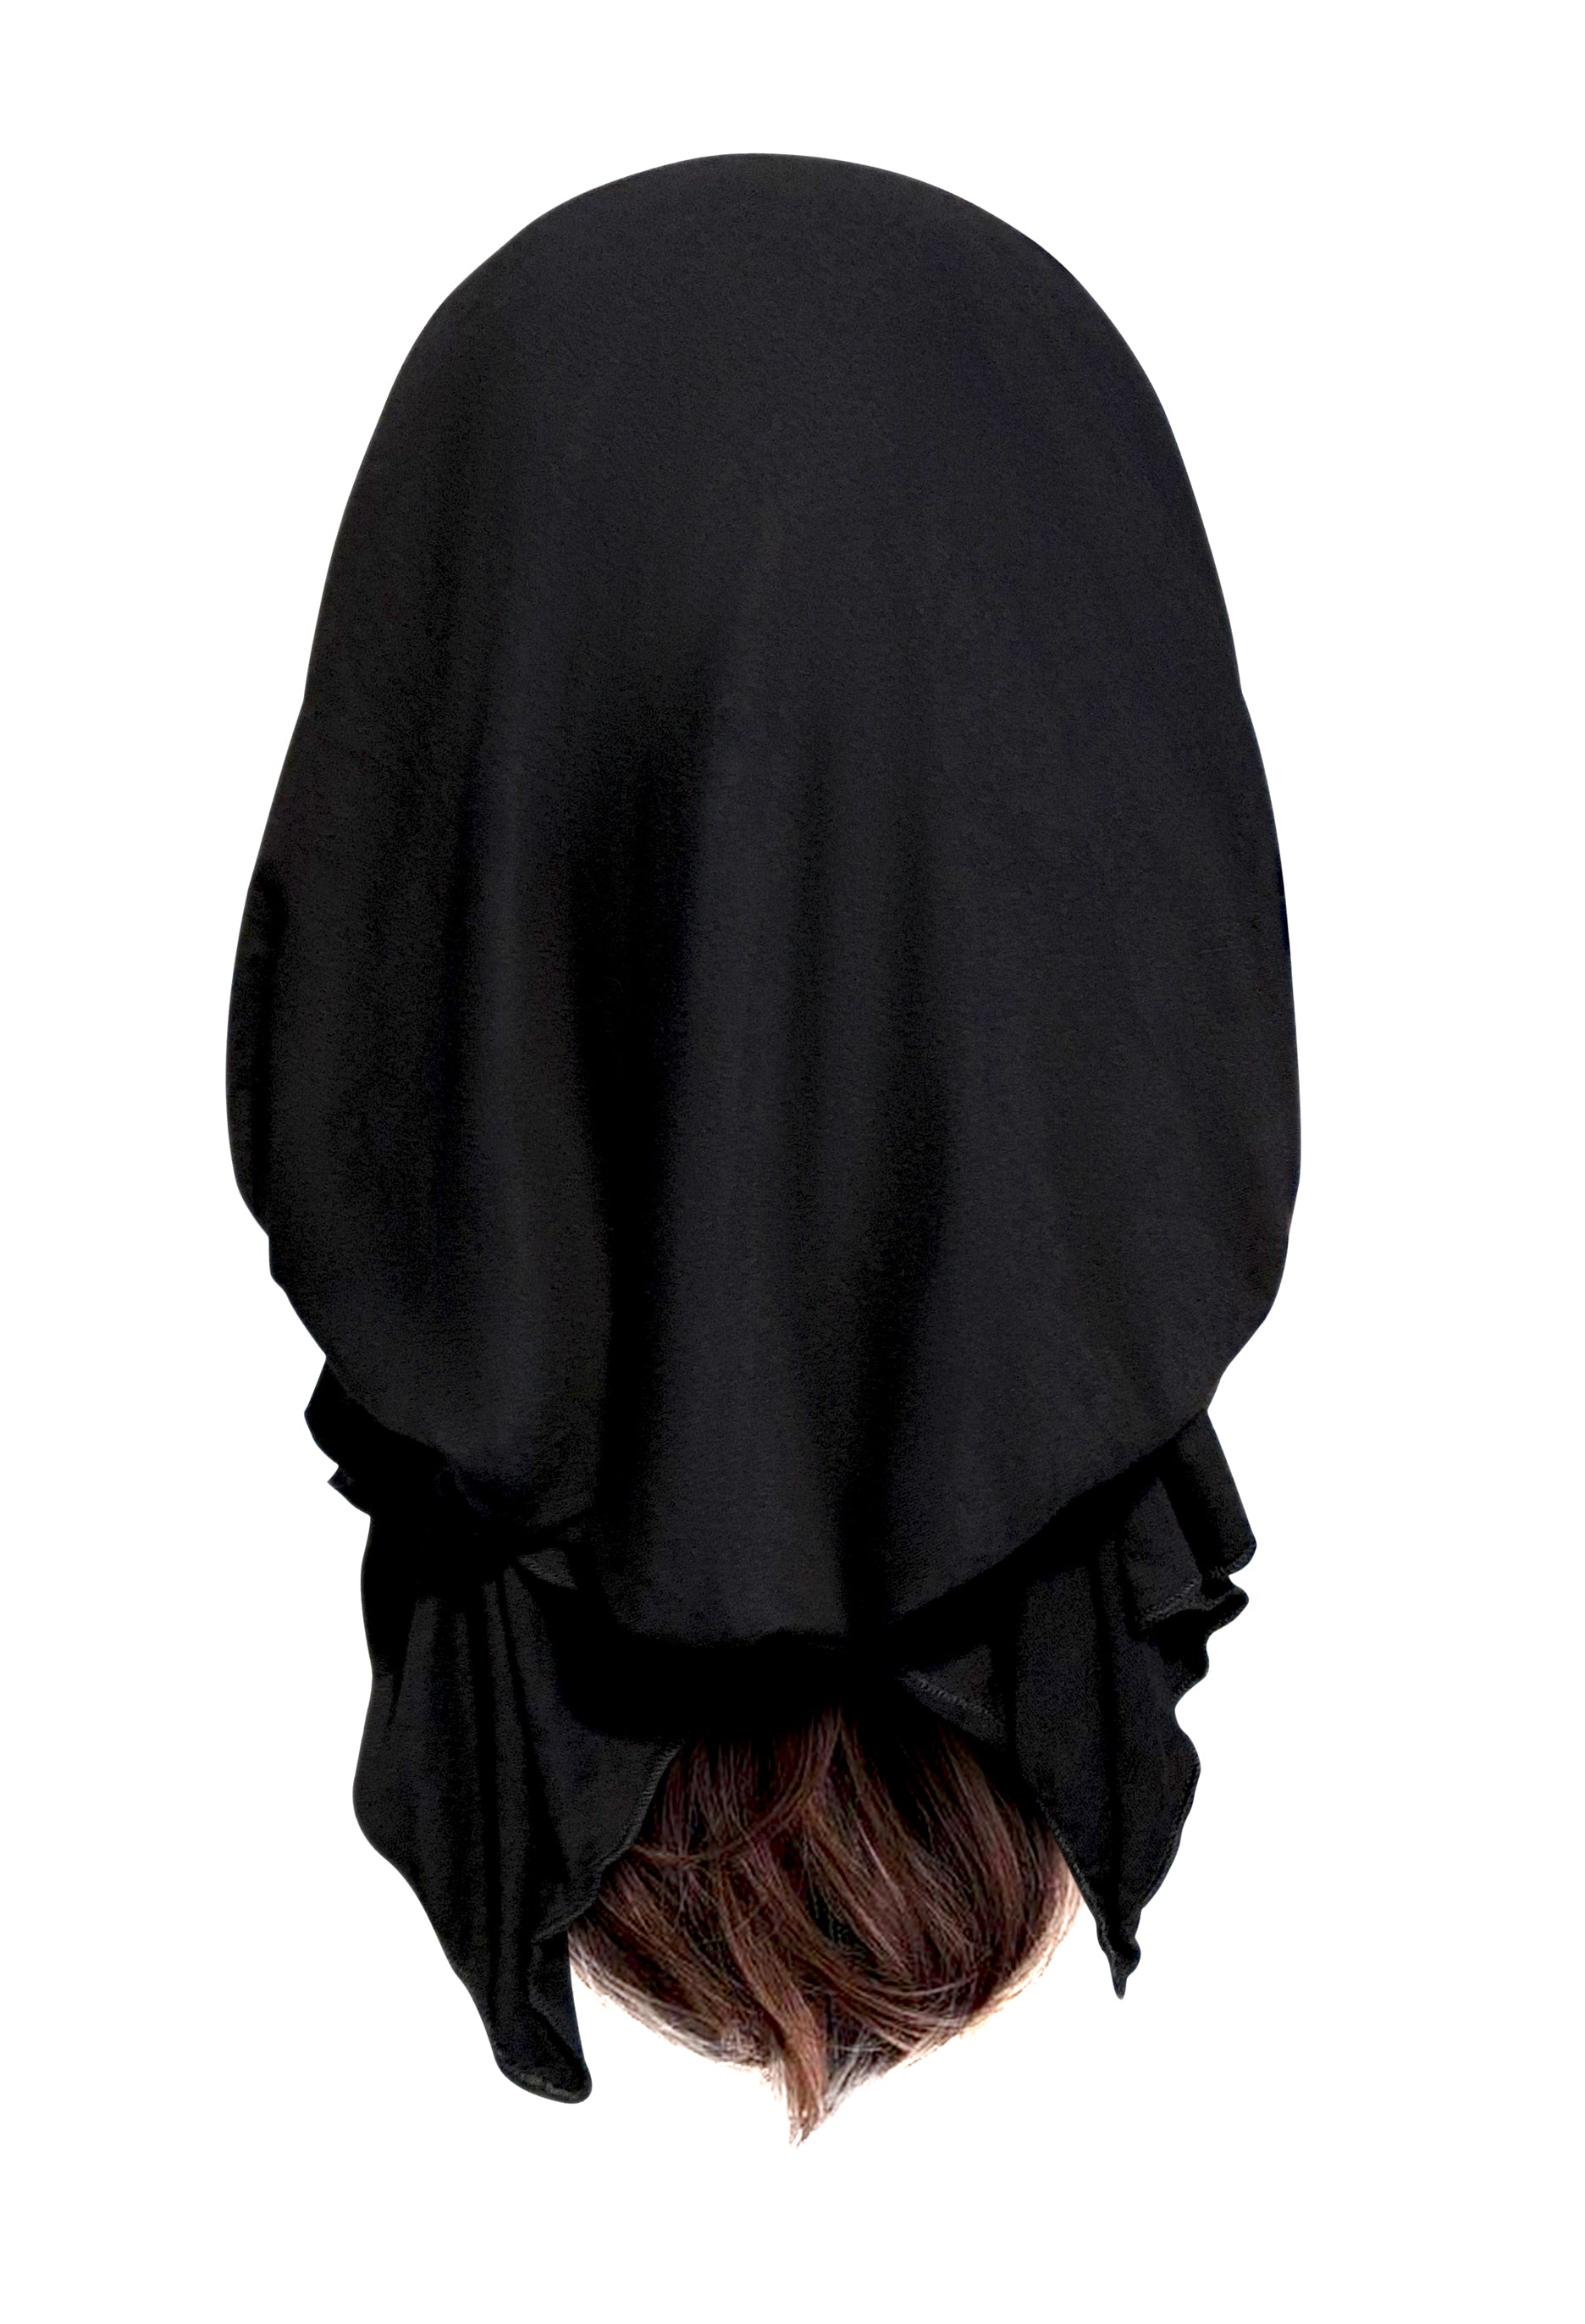 Black soft pre-tied headscarf with all gold trim